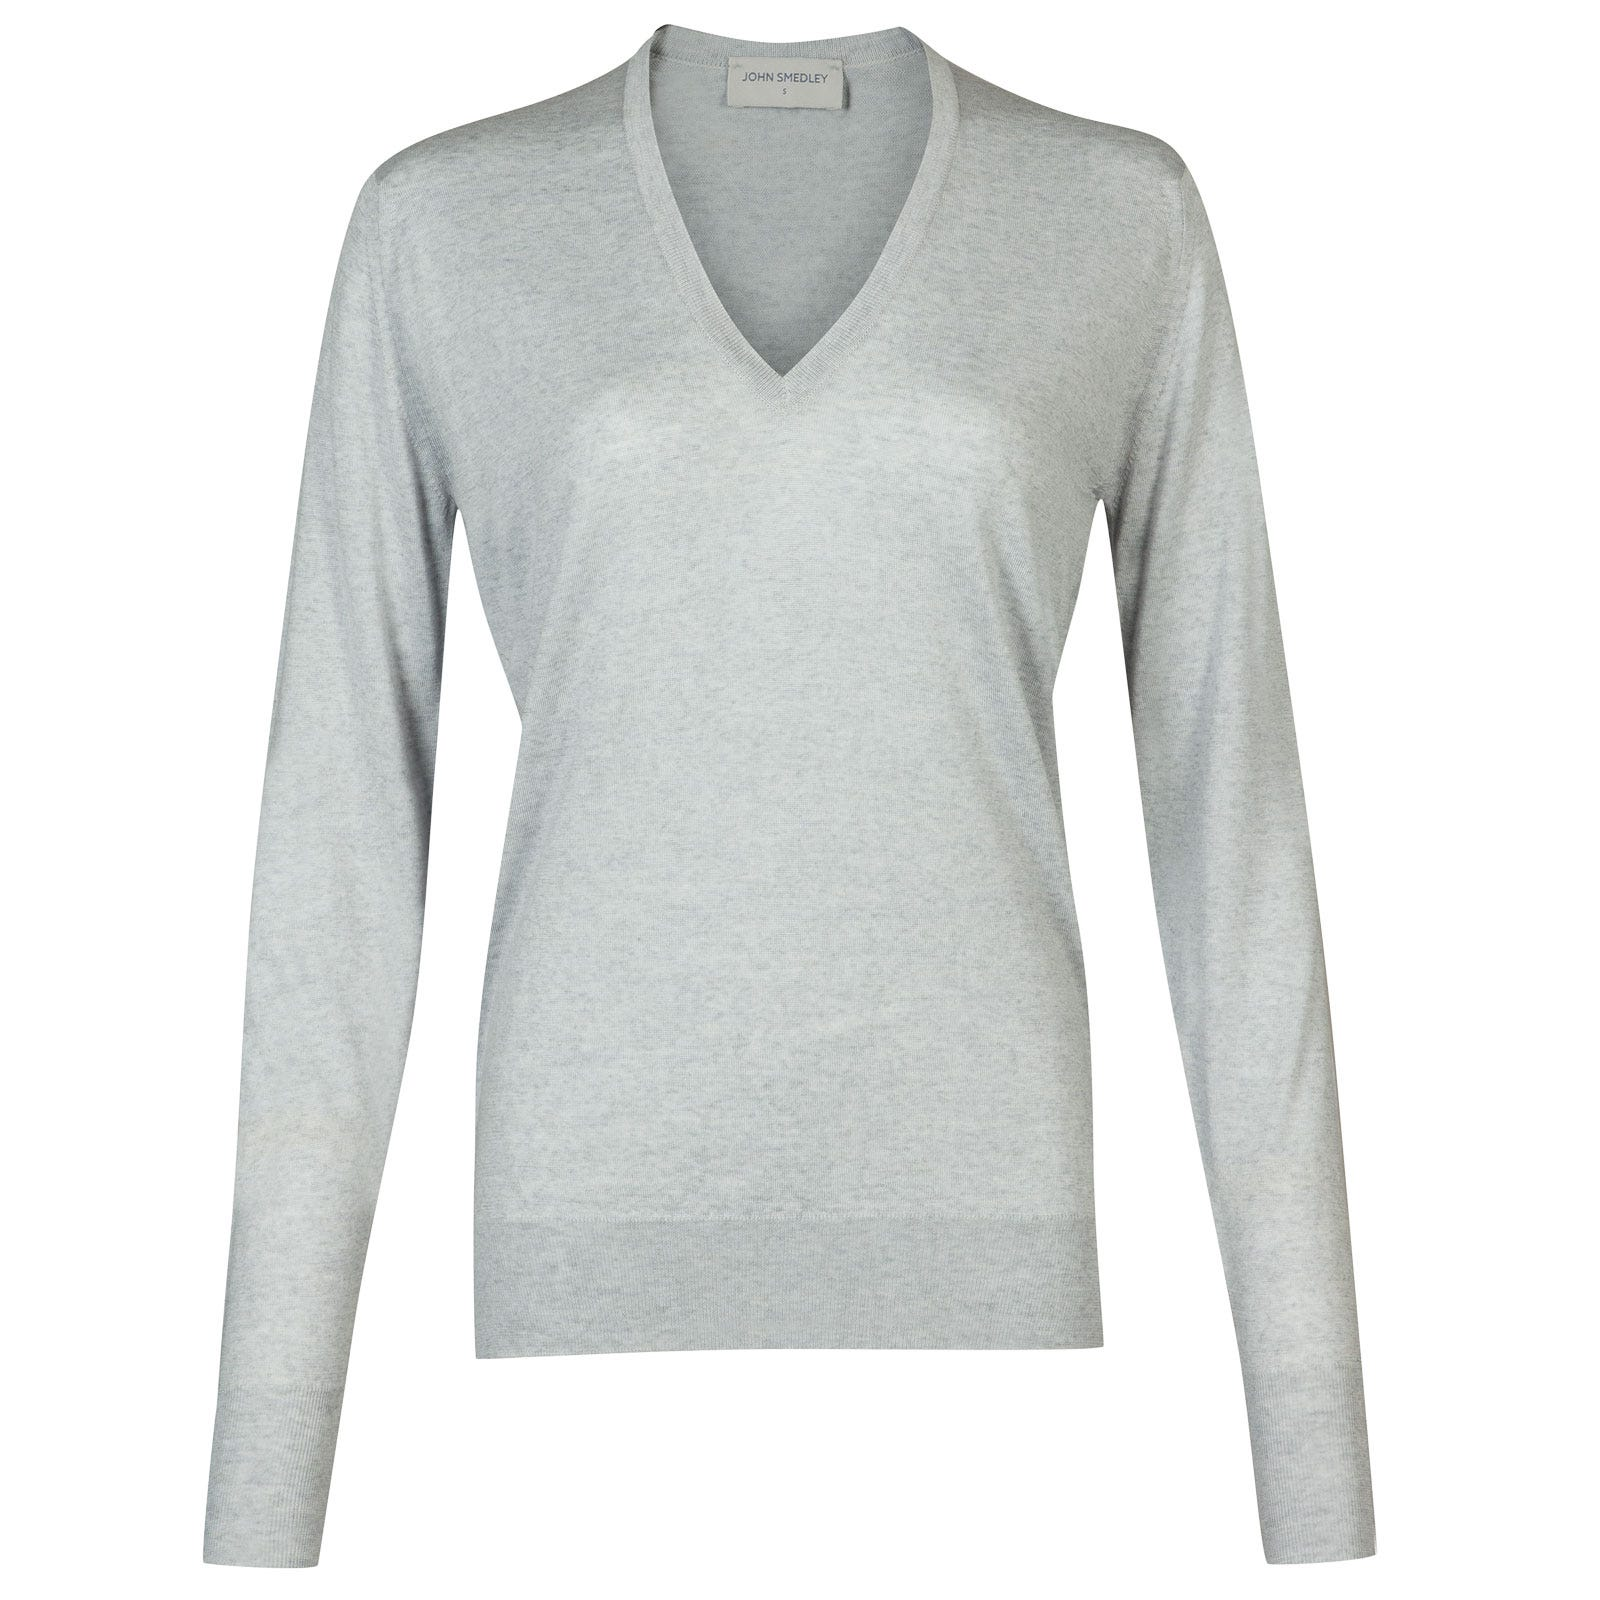 John Smedley Pepin Merino Wool Sweater in Bardot Grey-S